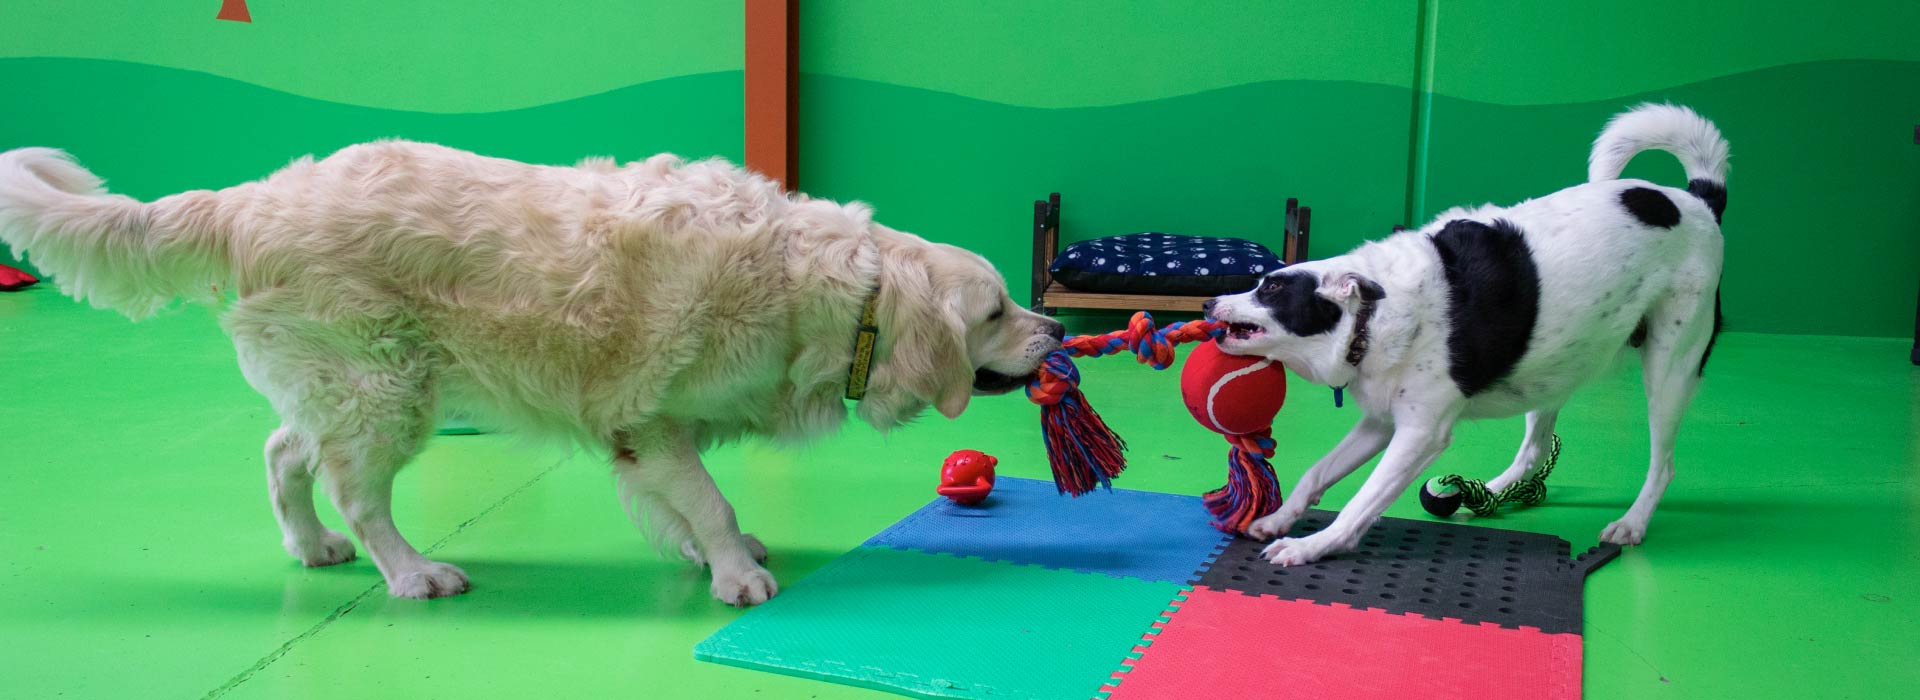 Two dogs tugging for a toy